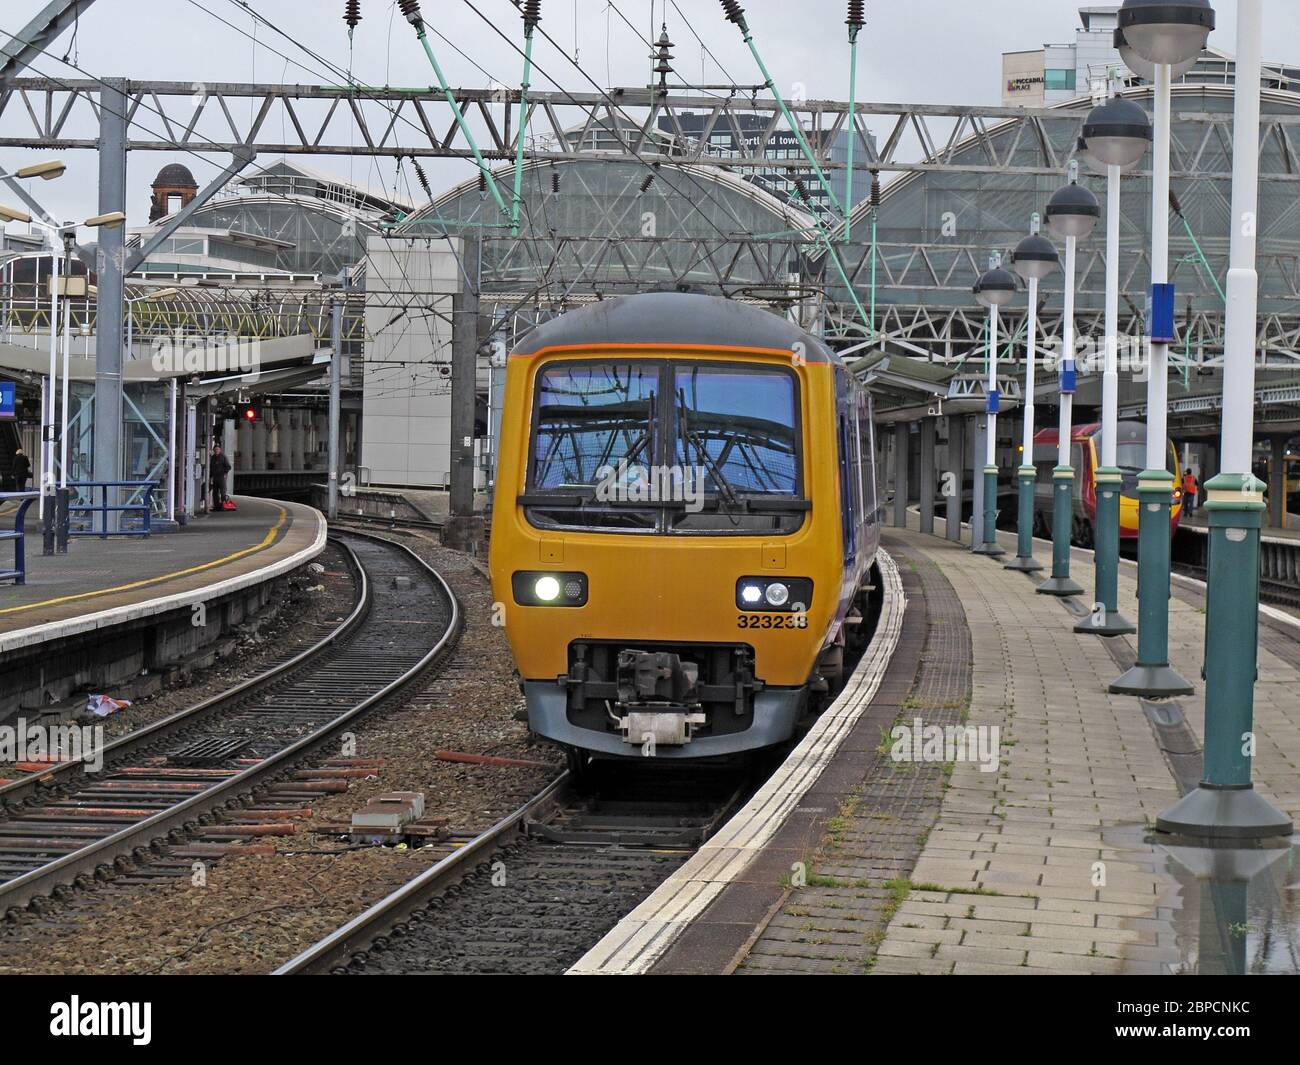 HotpixUK,@HotpixUK,GoTonySmith,rail,EMU,Electric,train,EMU 323238,323238,northern,northern rail,Piccadilly,trains,public,transport,Manchester Piccadilly,Manchester,platform,mainline,station,railway station,electrification,overhead,power,lines,electric train,passenger train,season tickets,declining,passenger numbers,commuters,empty platform,working from home not going to the office